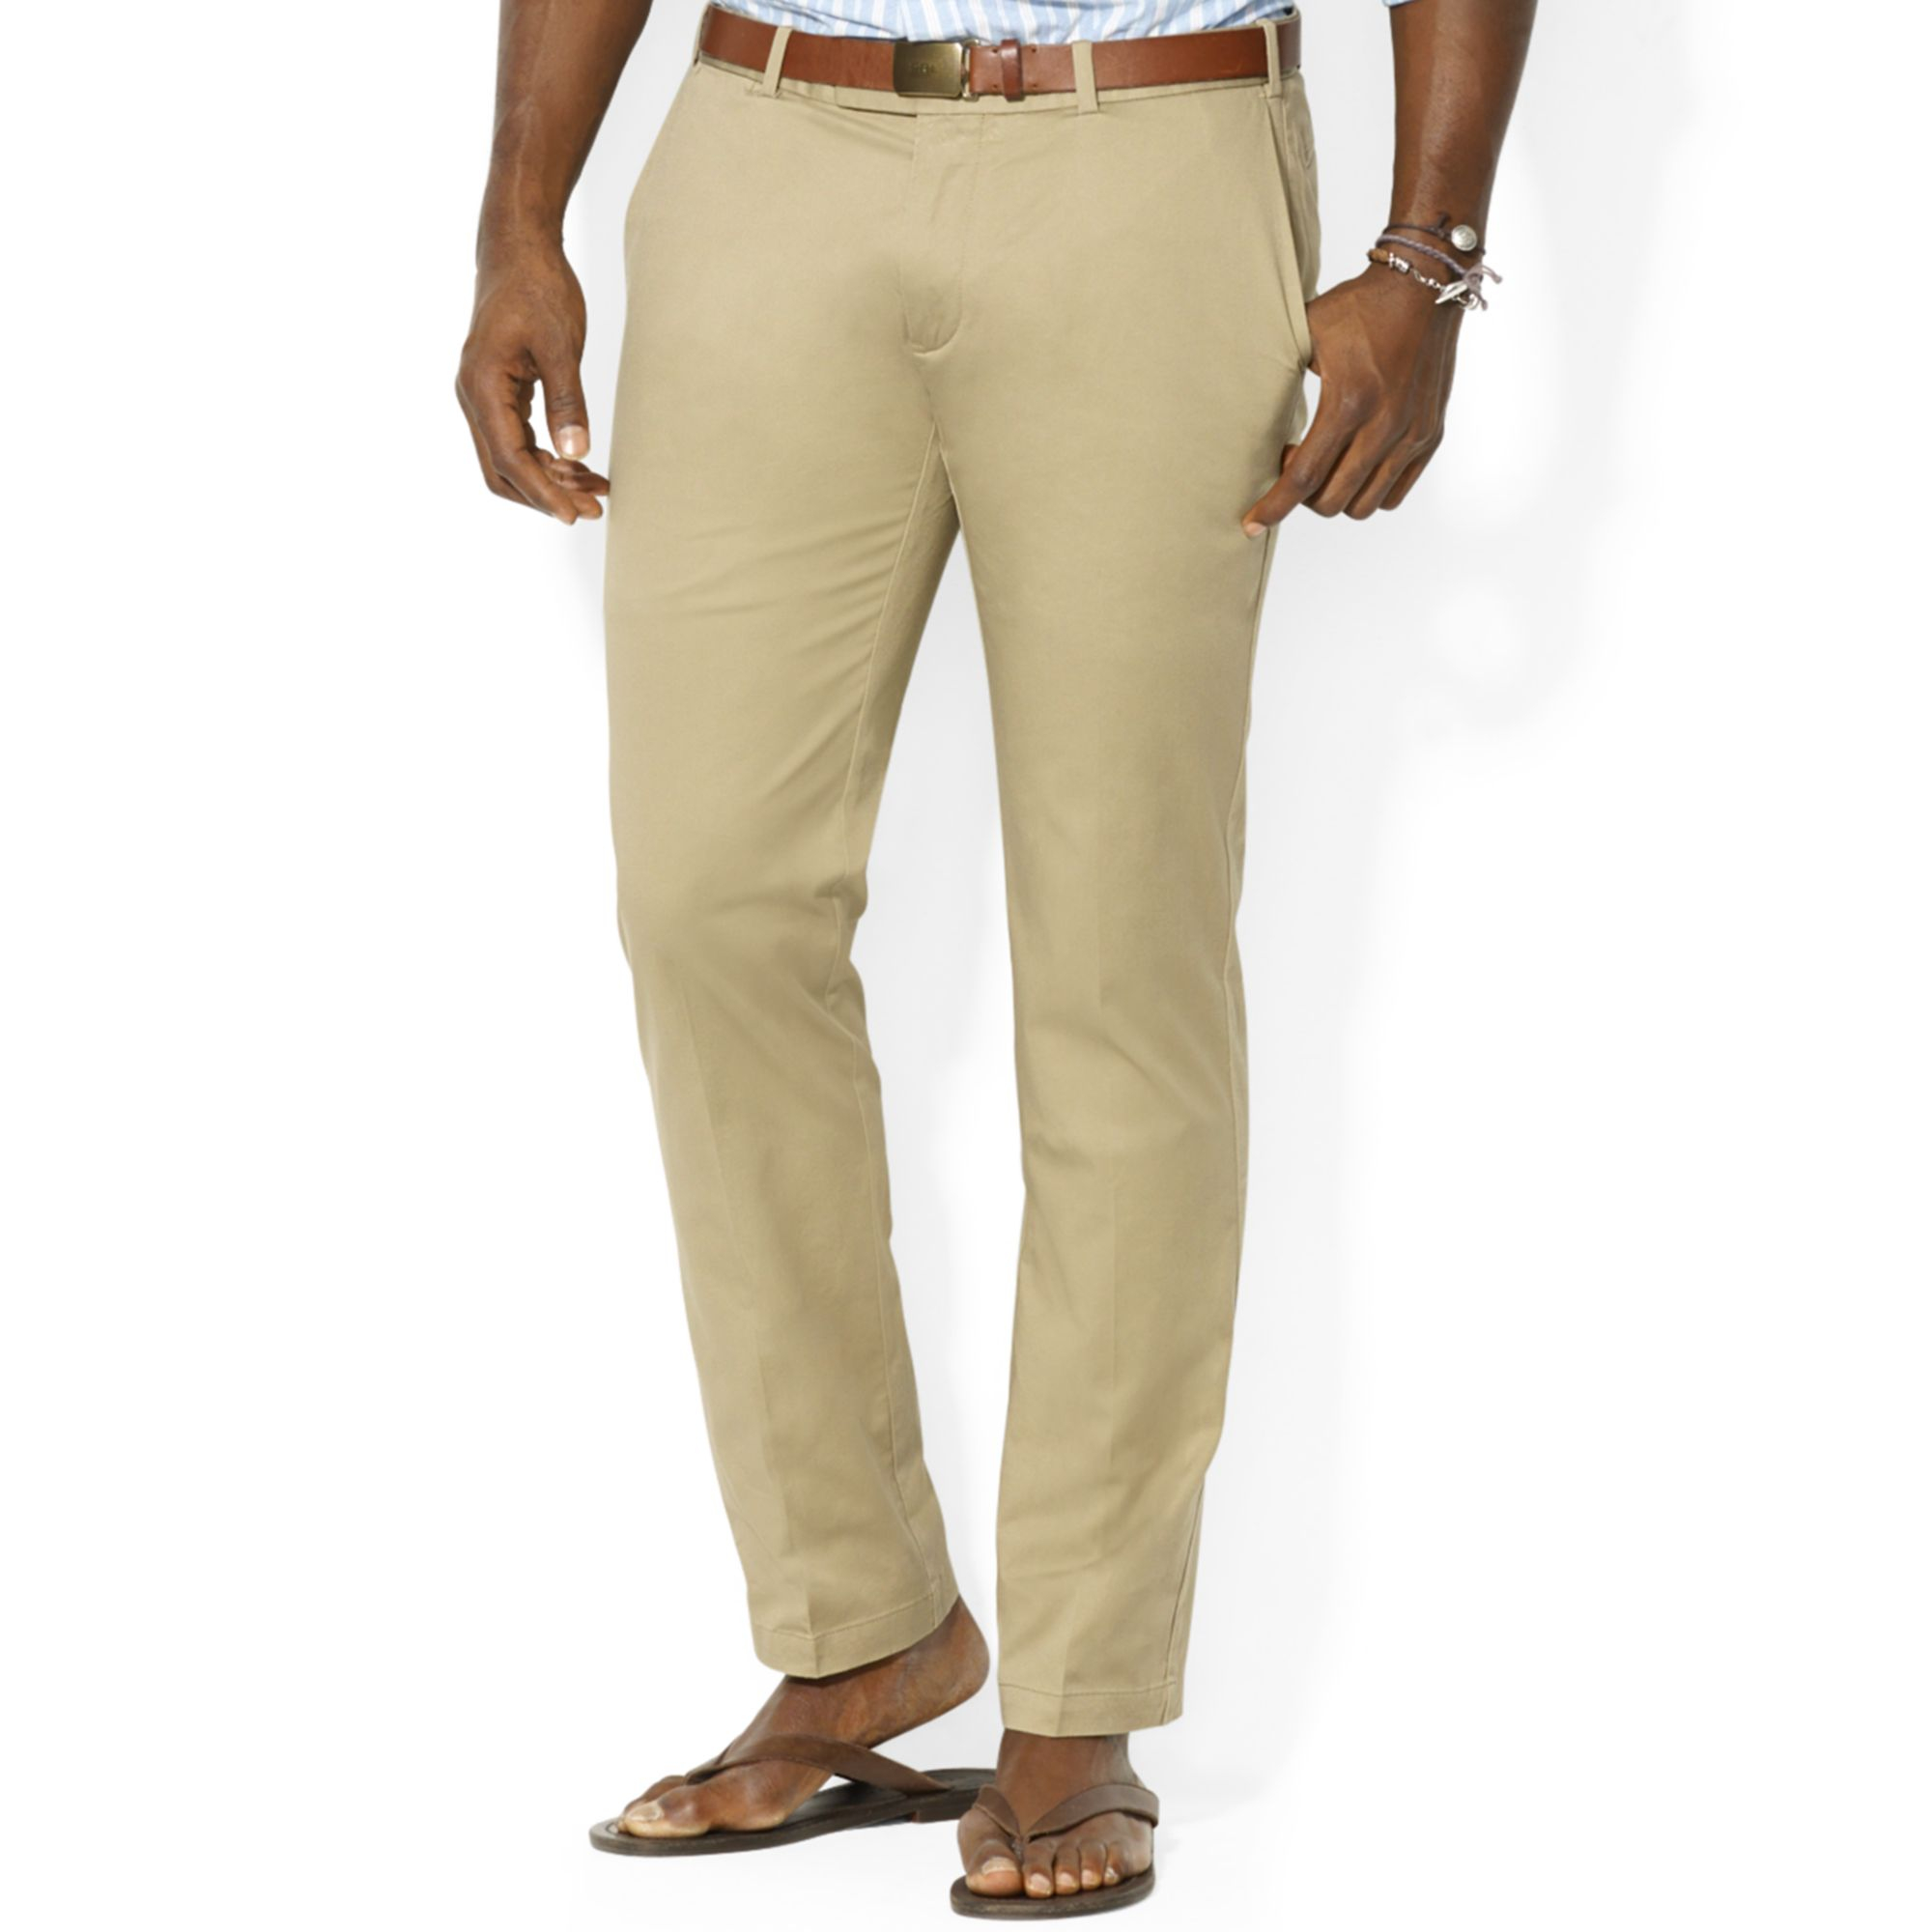 Enjoy free shipping and easy returns every day at Kohl's. Find great deals on Big & Tall Dockers at Kohl's today!